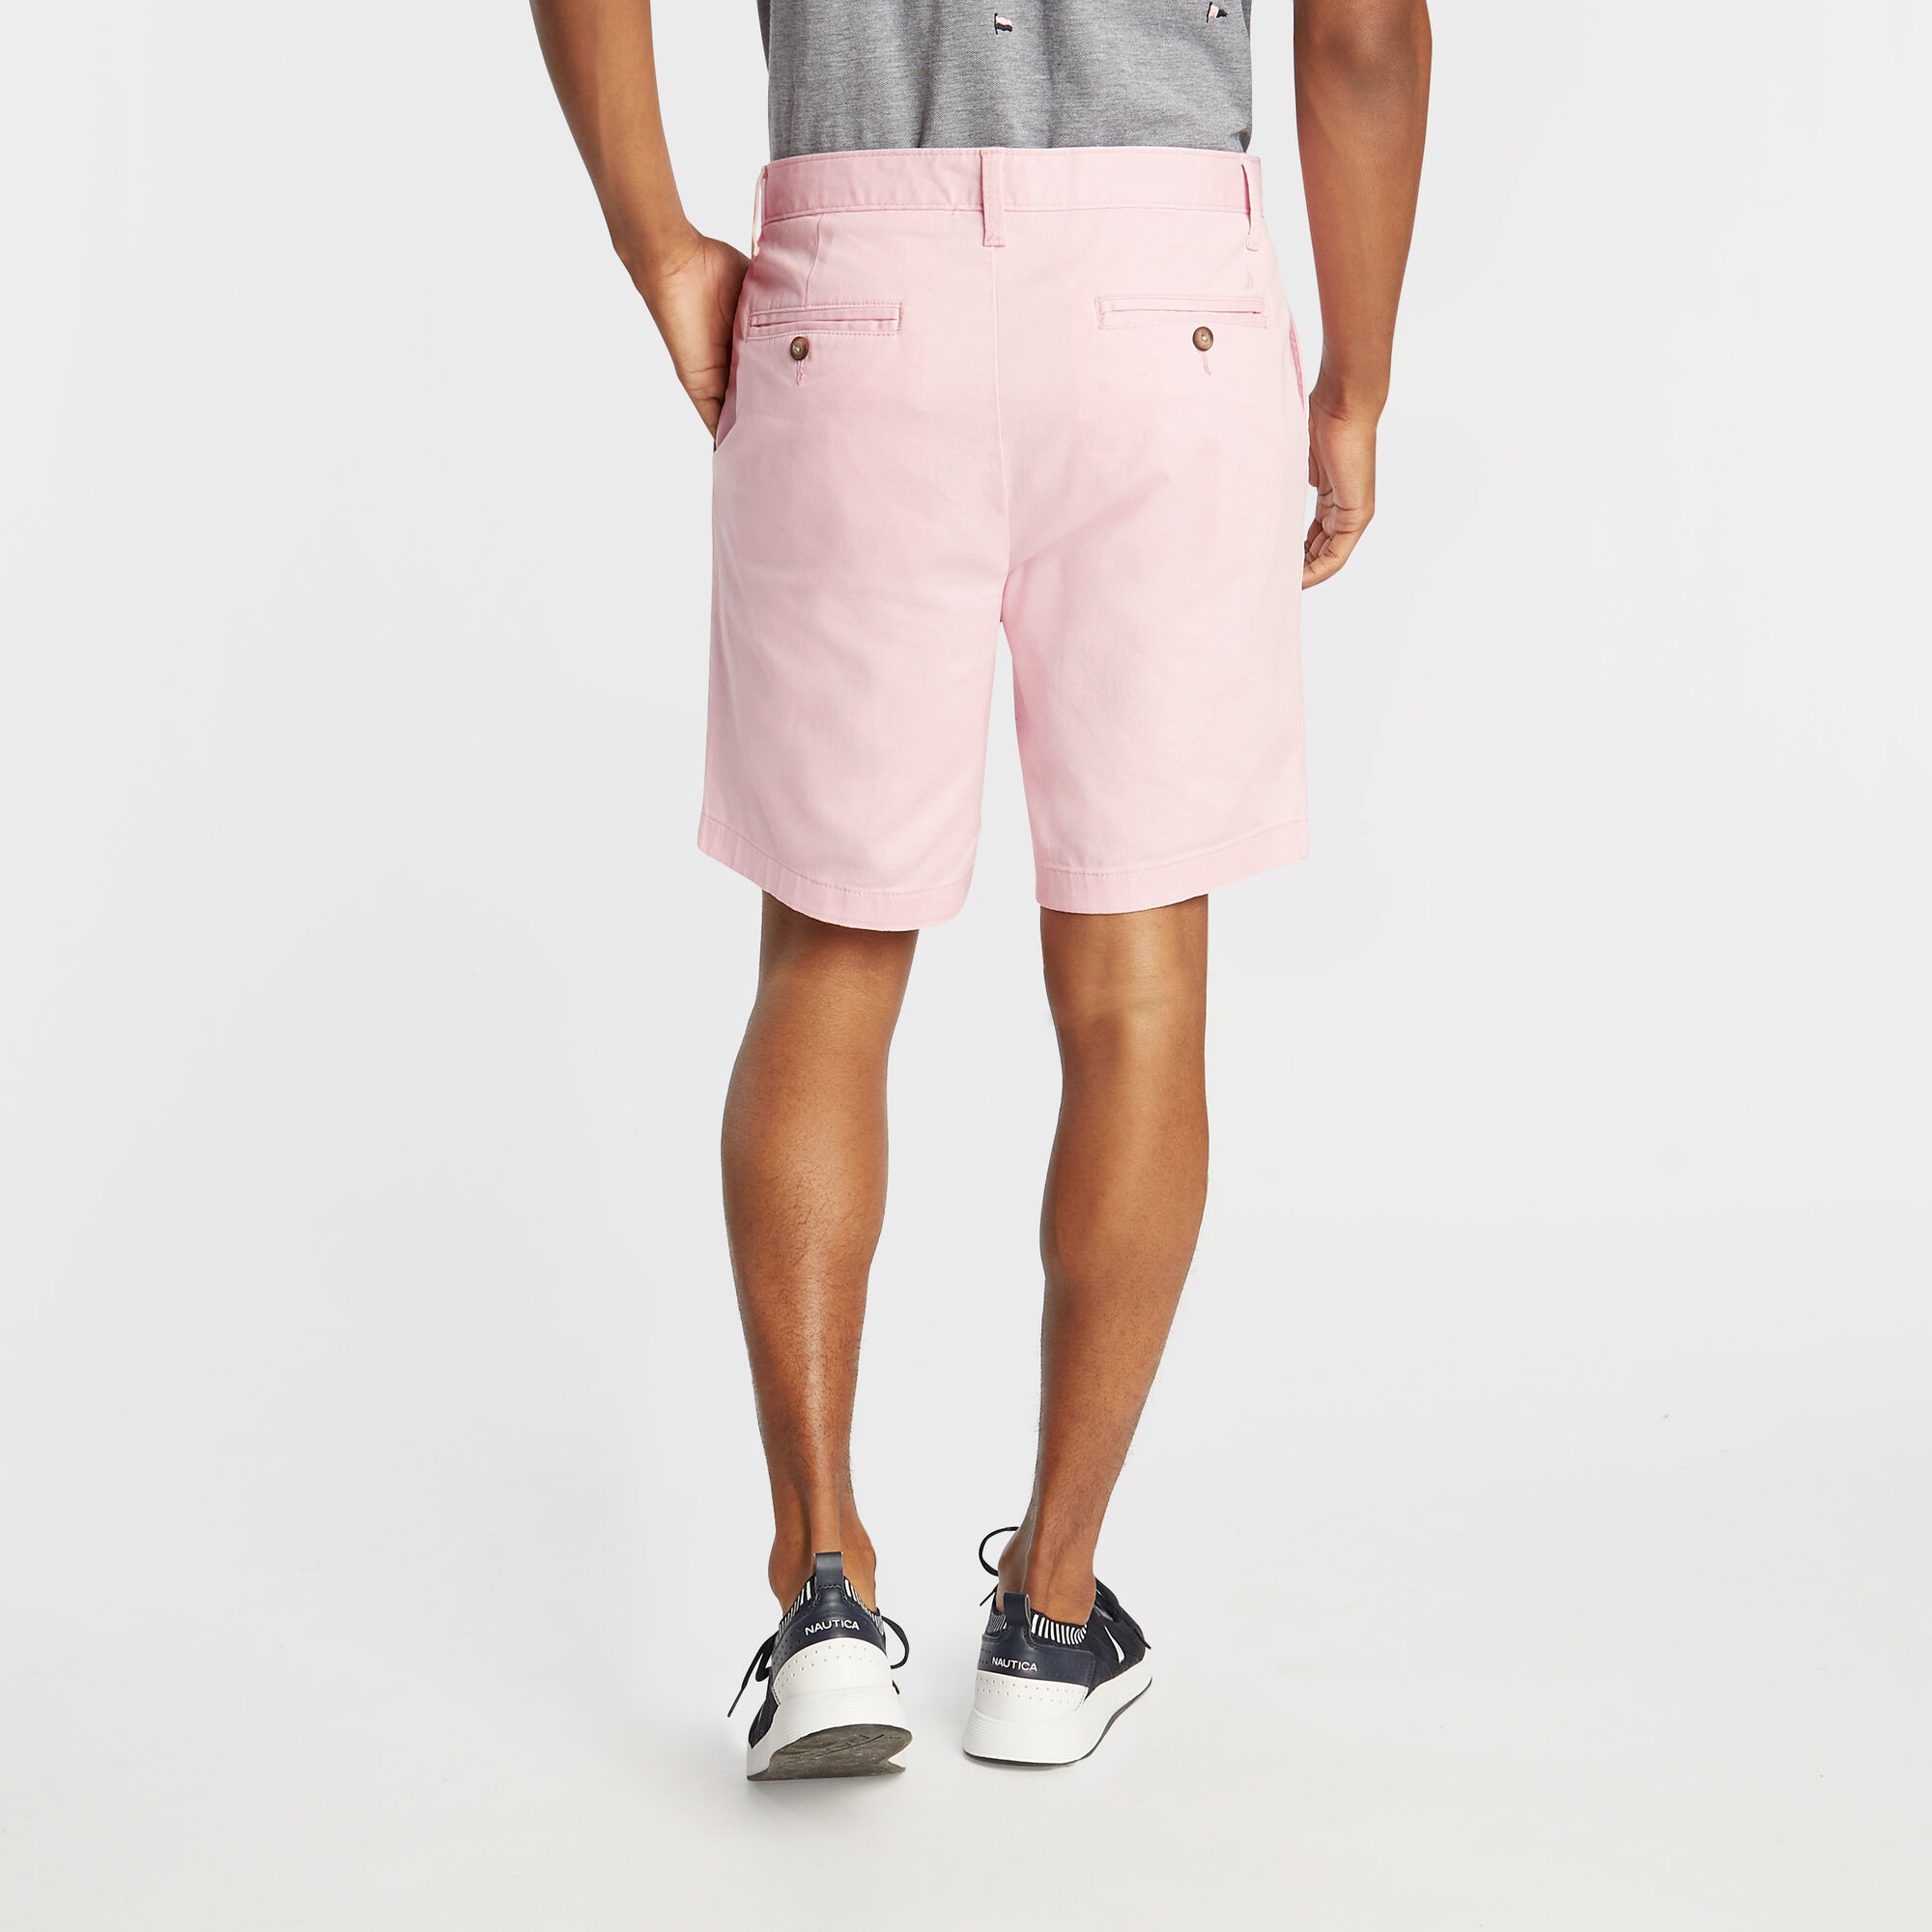 Nautica-Mens-8-5-034-Classic-Fit-Deck-Short-With-Stretch thumbnail 37